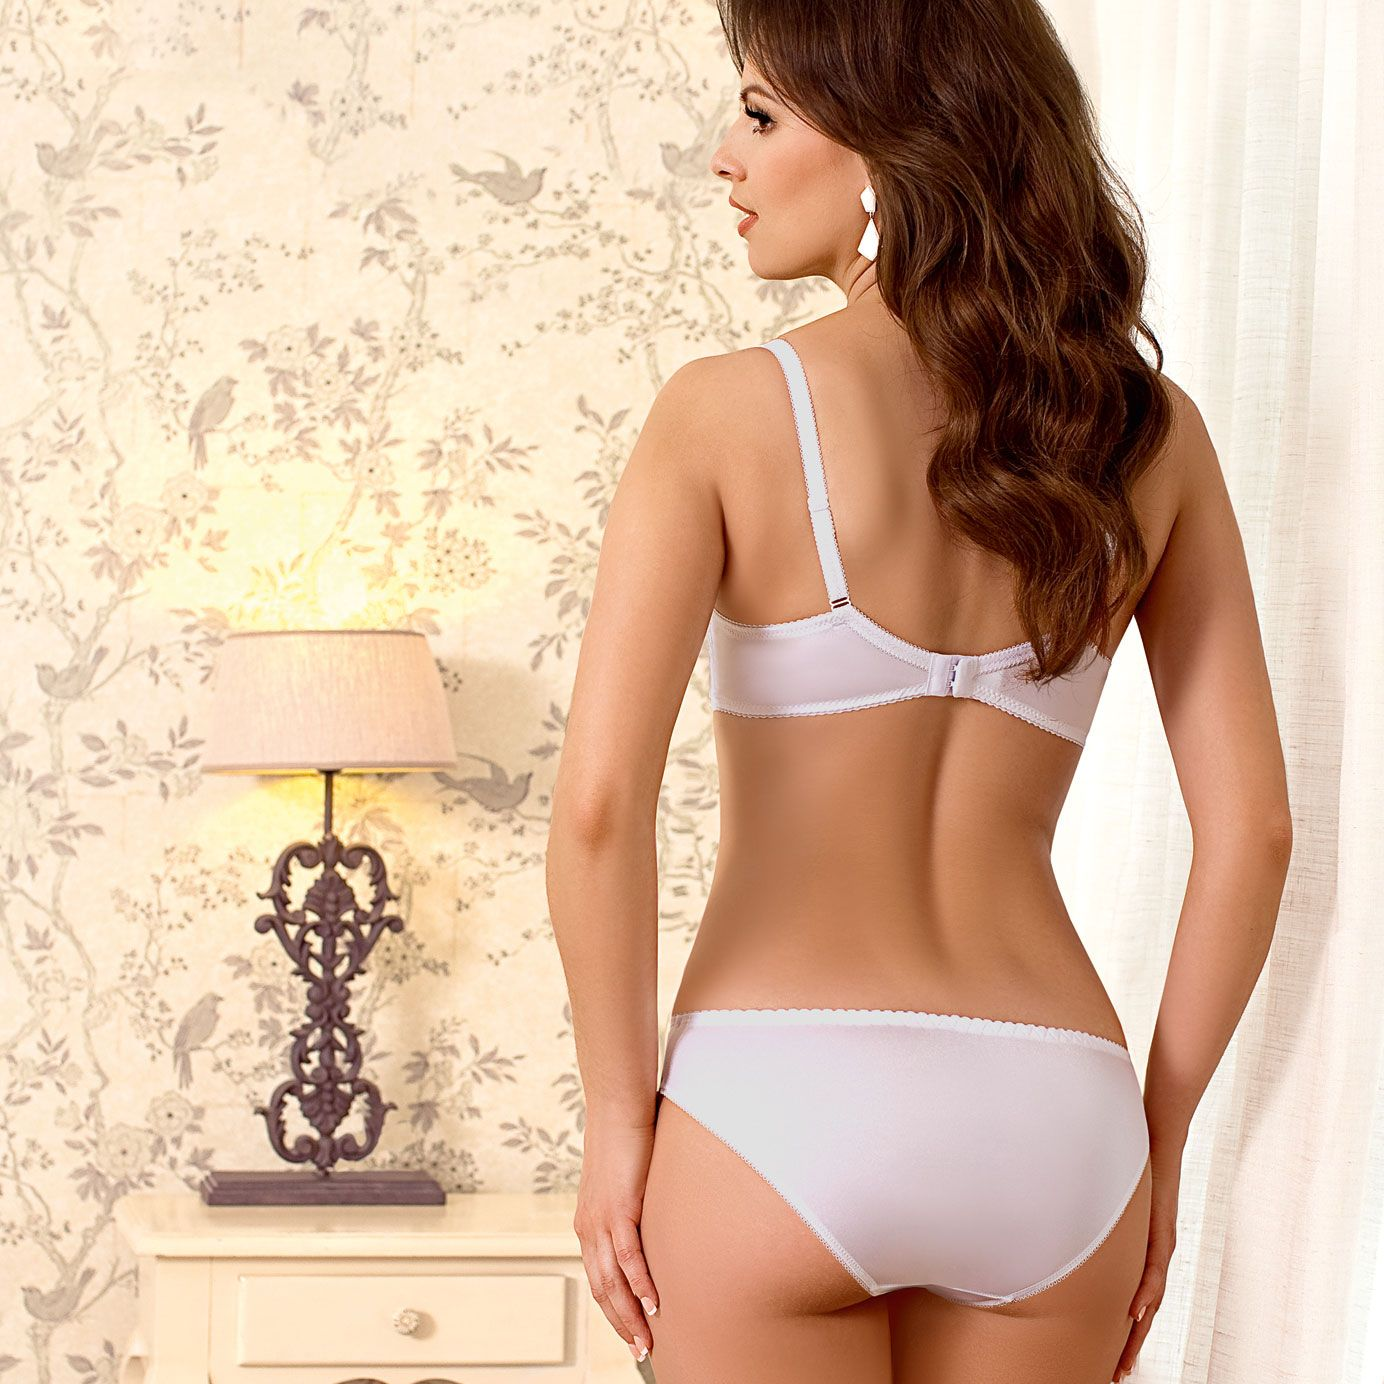 Gorteks European Bridal, Wedding Lingerie Collection ...